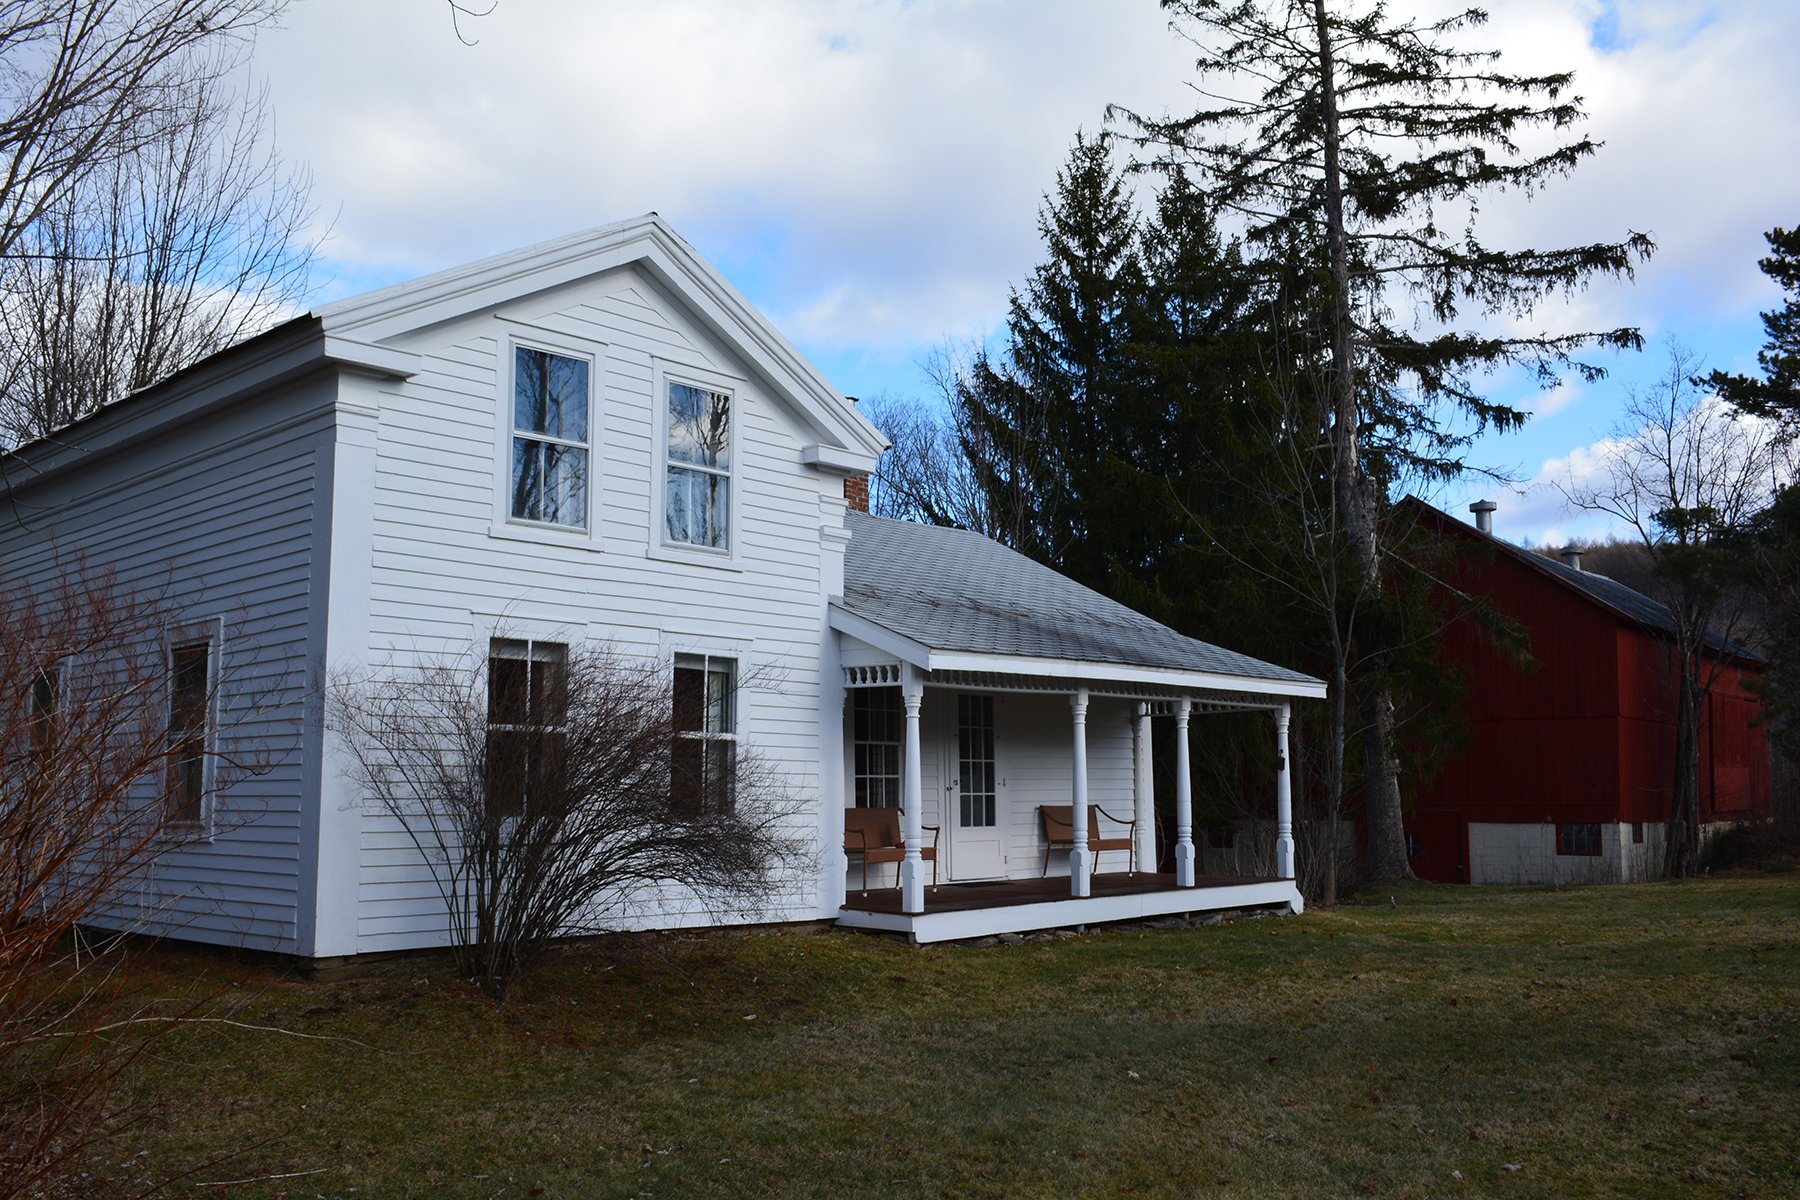 Maison unifamiliale pour l Vente à Classic Farmhouse with Subdividable Land 6774 Cr23walton-sidney Rd Sidney Center, New York 13839 États-Unis